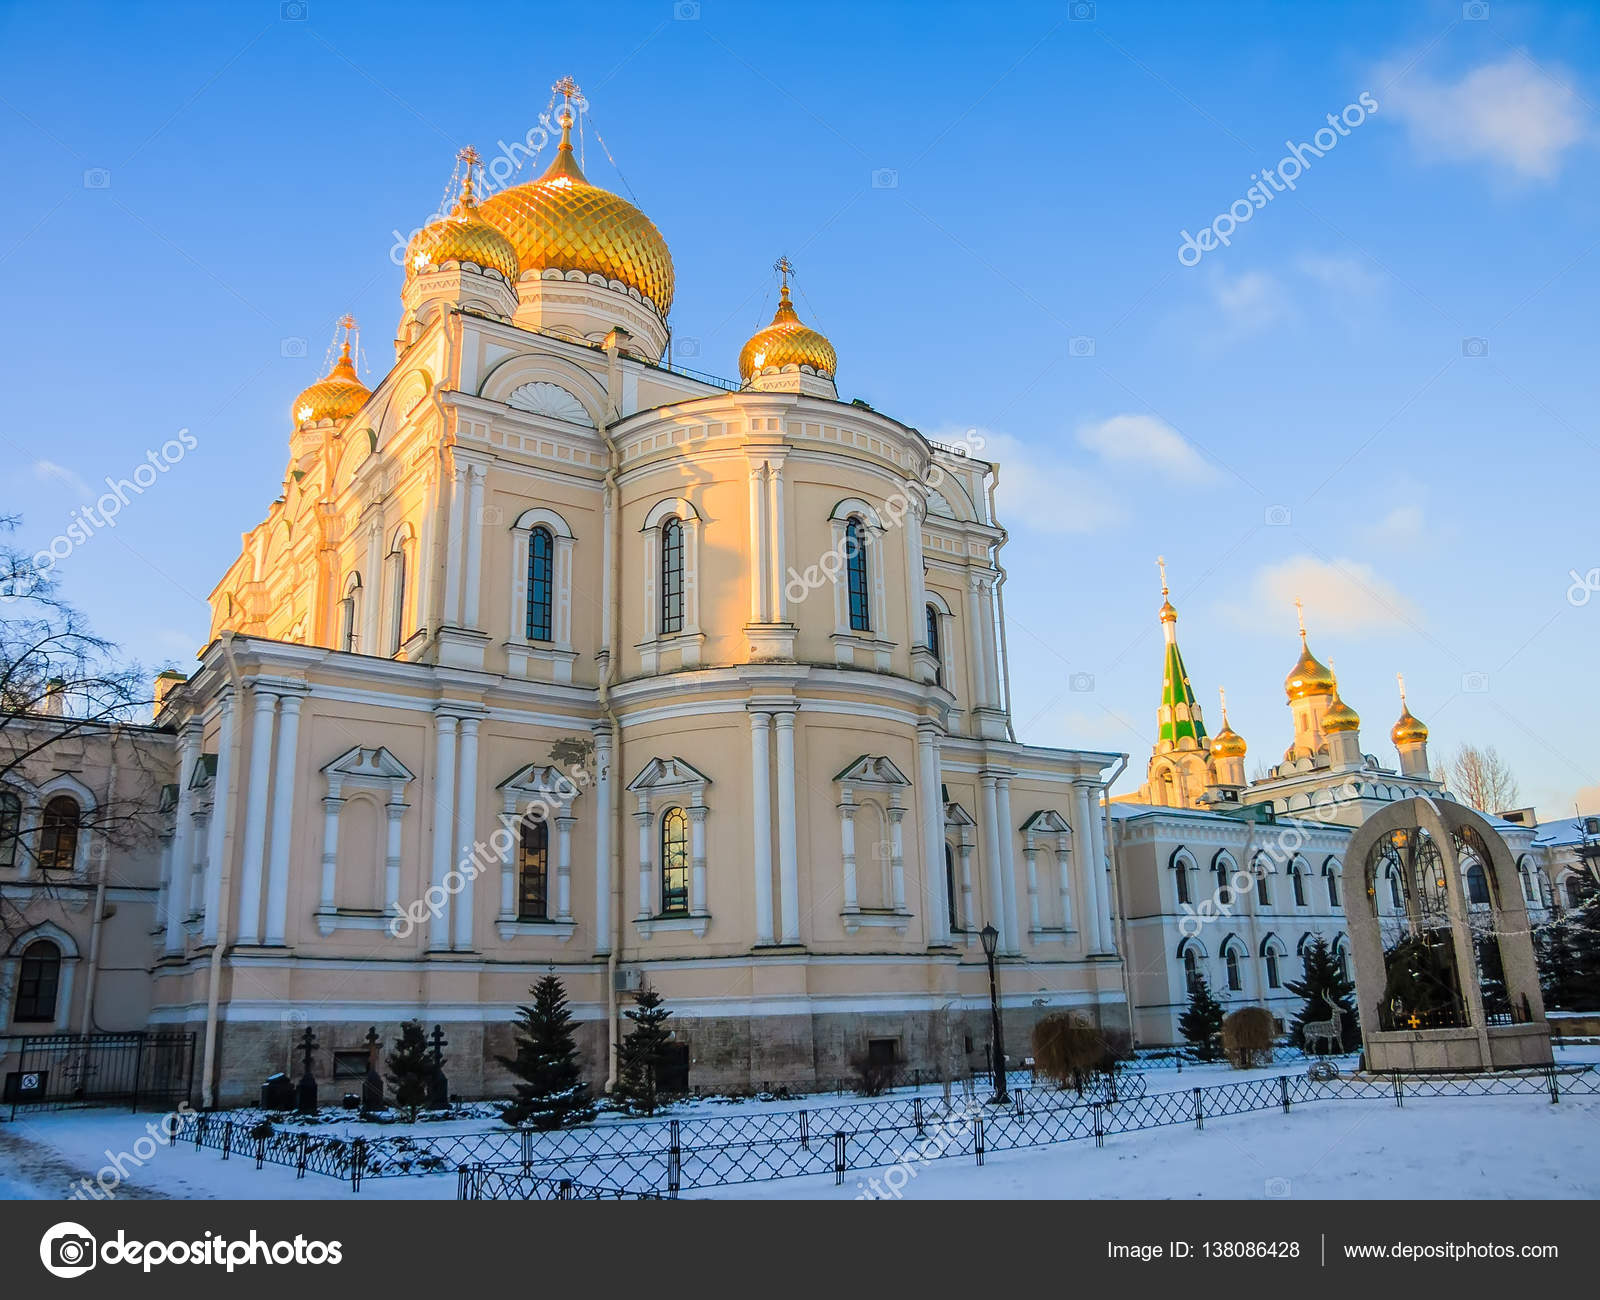 Resurrection Novodevichy Convent in St. Petersburg 67